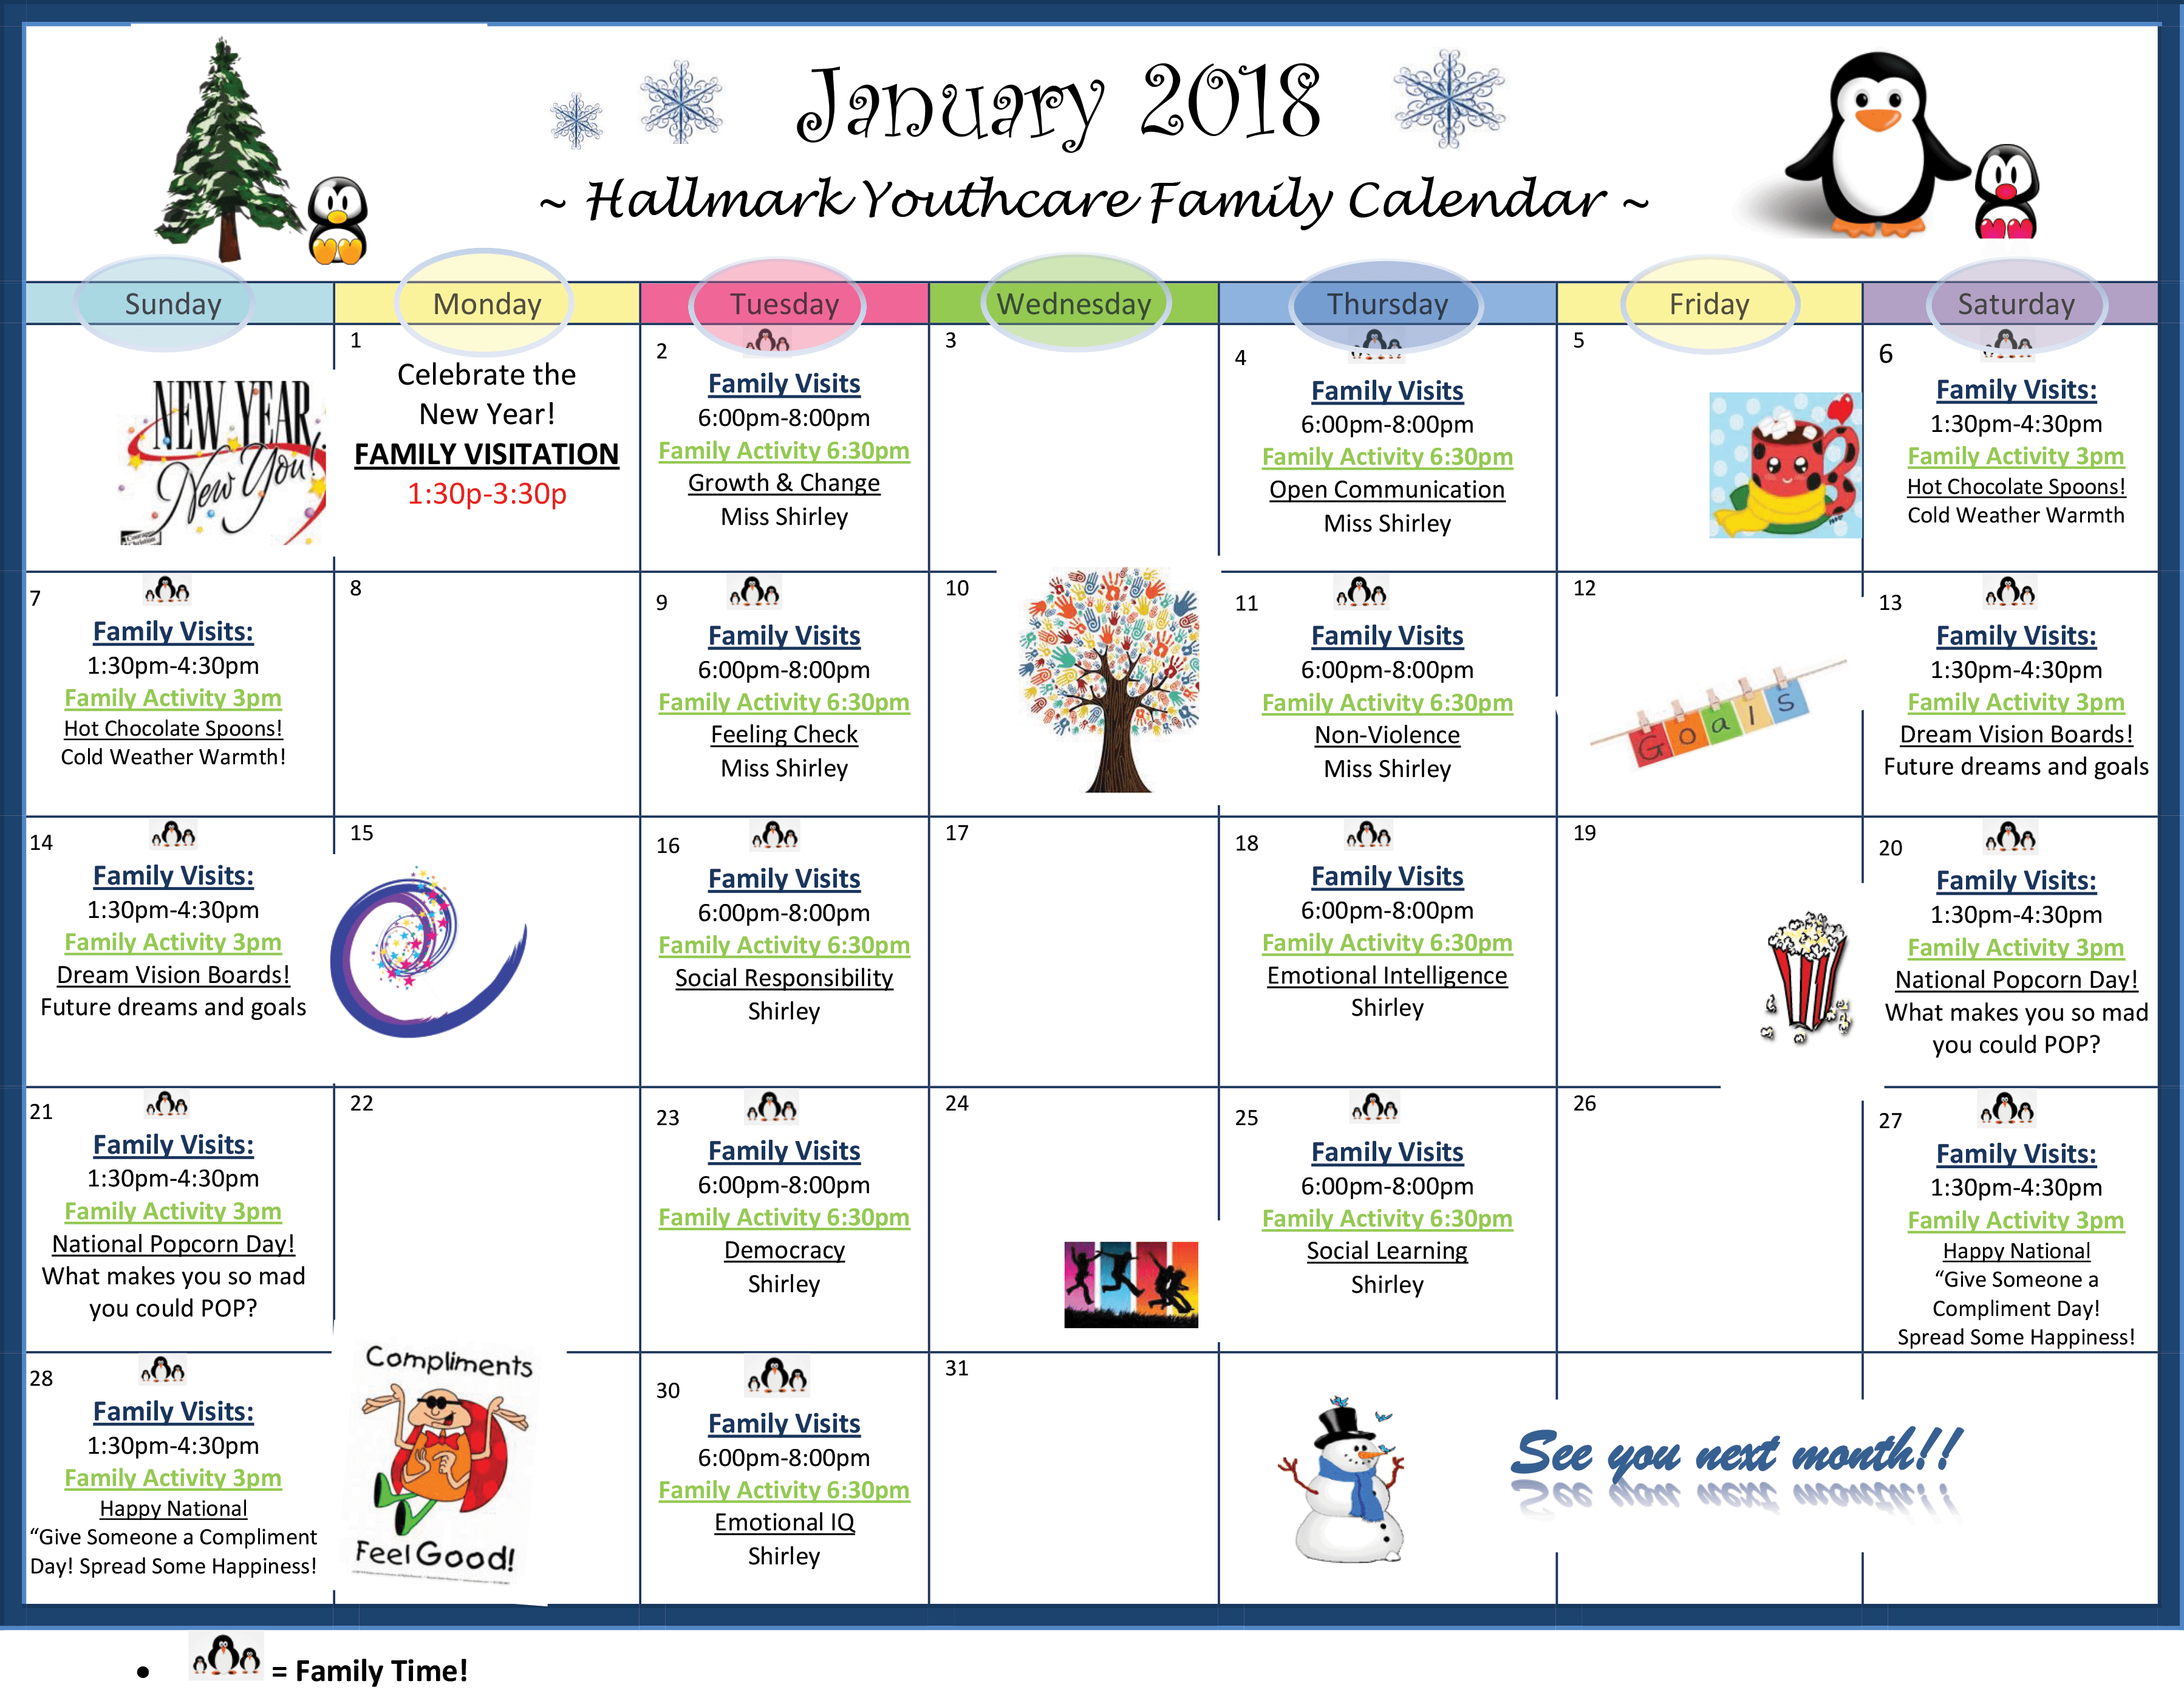 january 2018 family calendar hallmark youth care